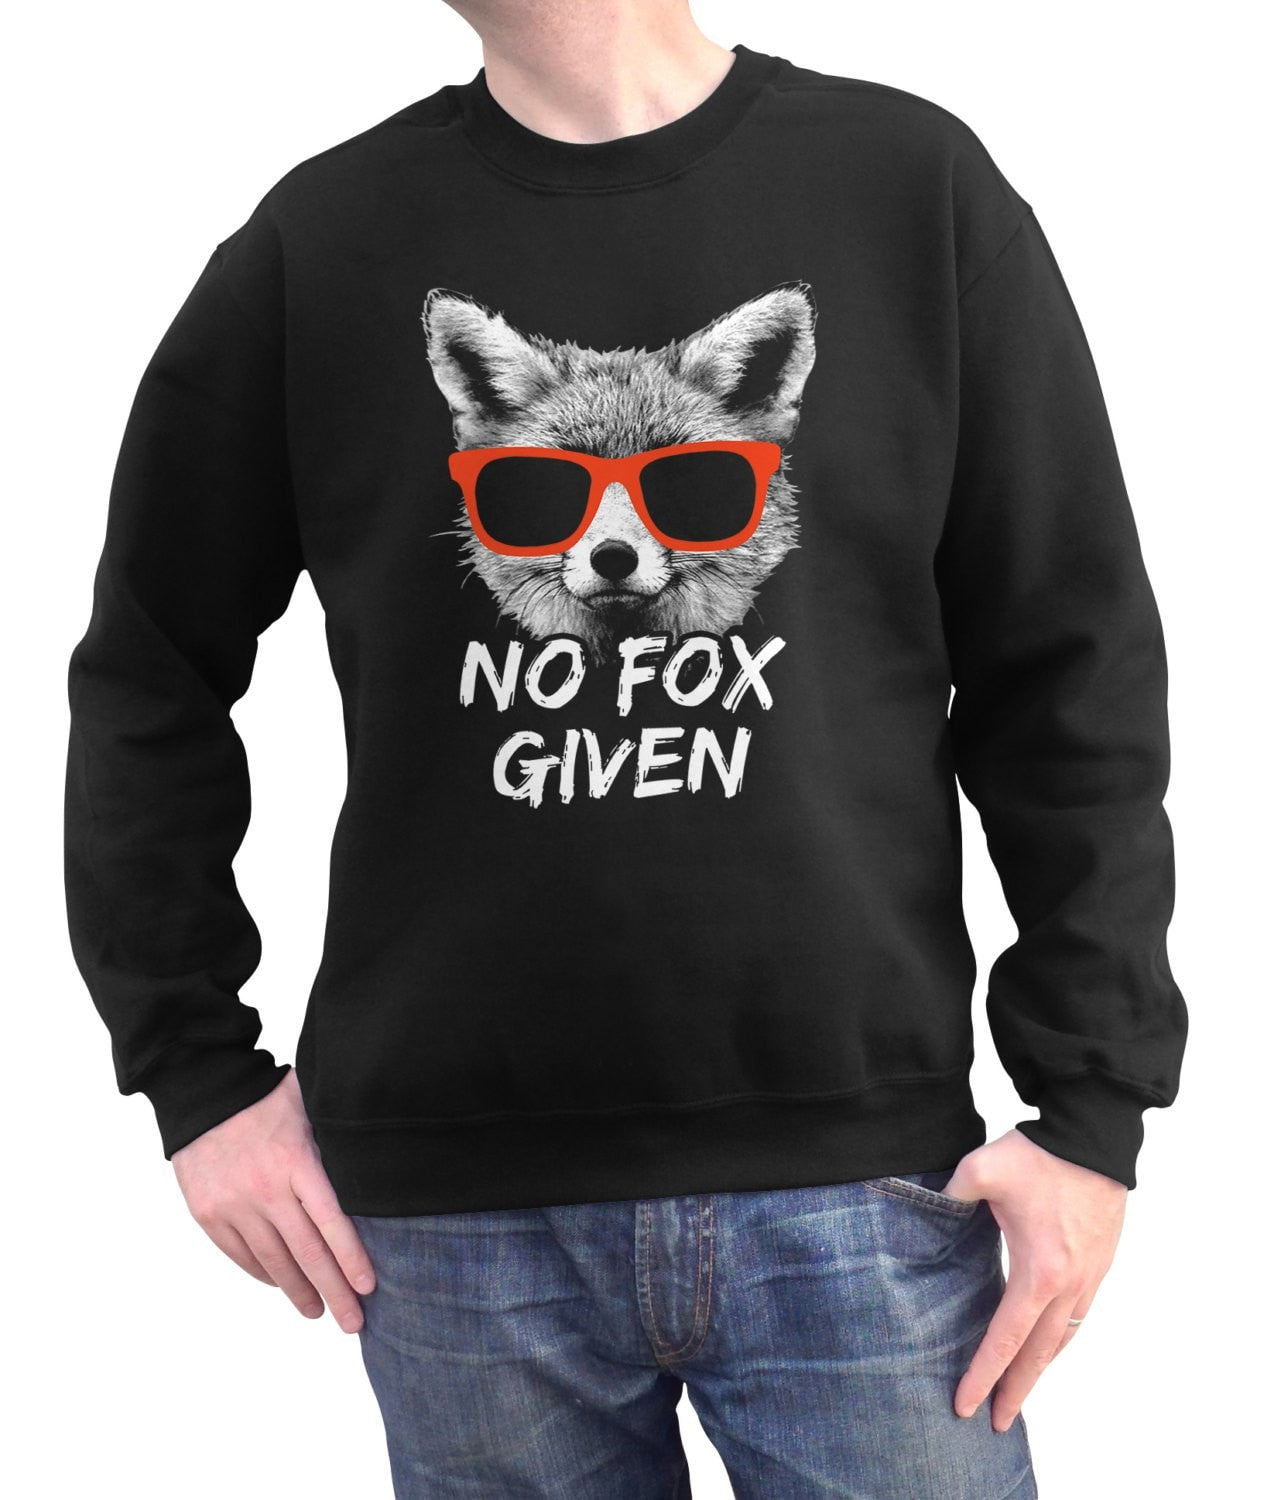 Unisex No Fox Given Sweatshirt